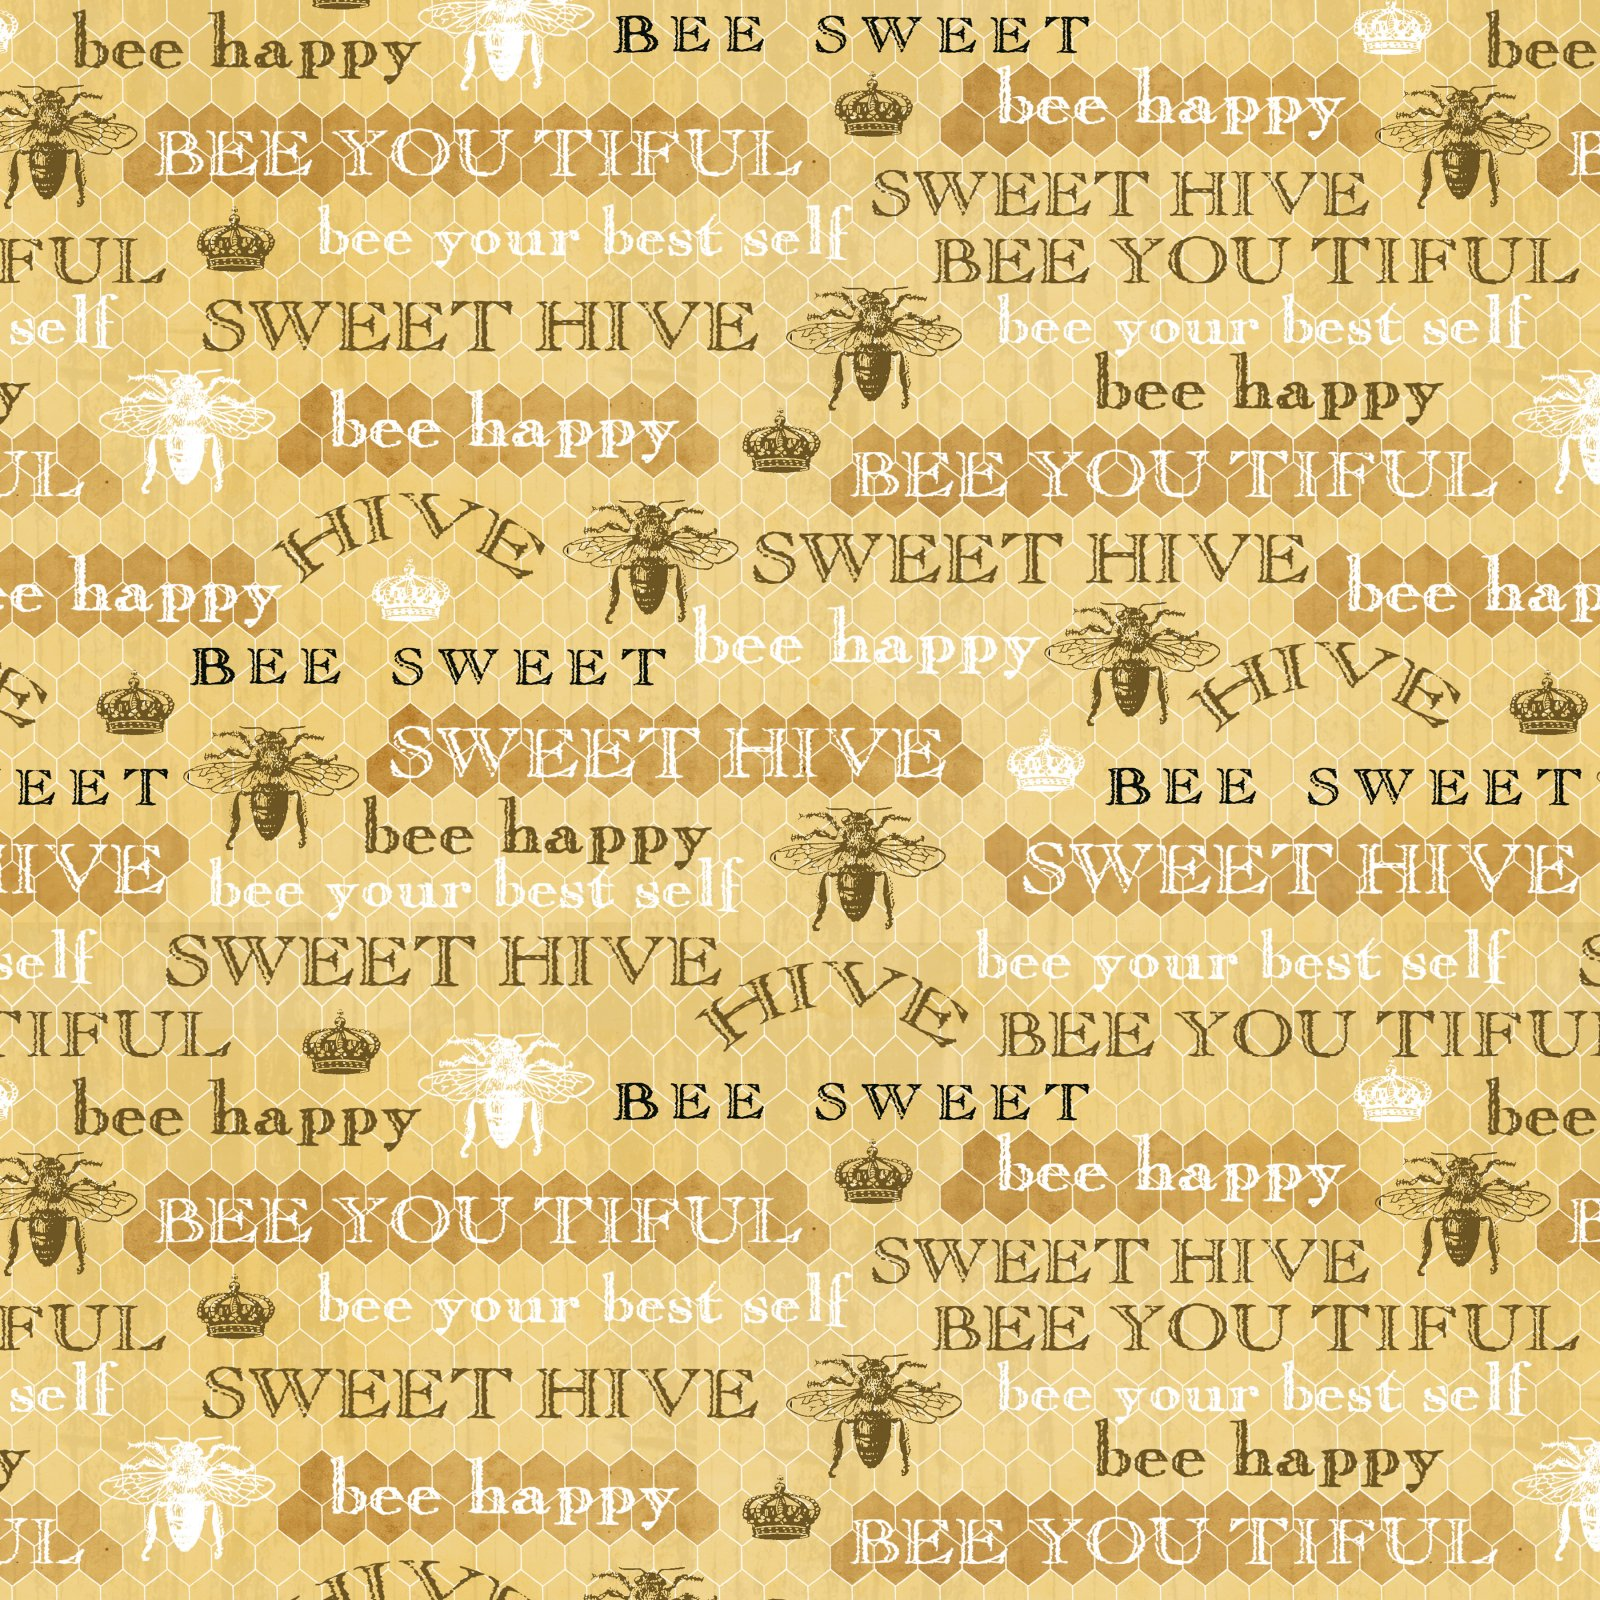 Studio E Bee Sweet Writing - Honey Words on Honeycomb Print